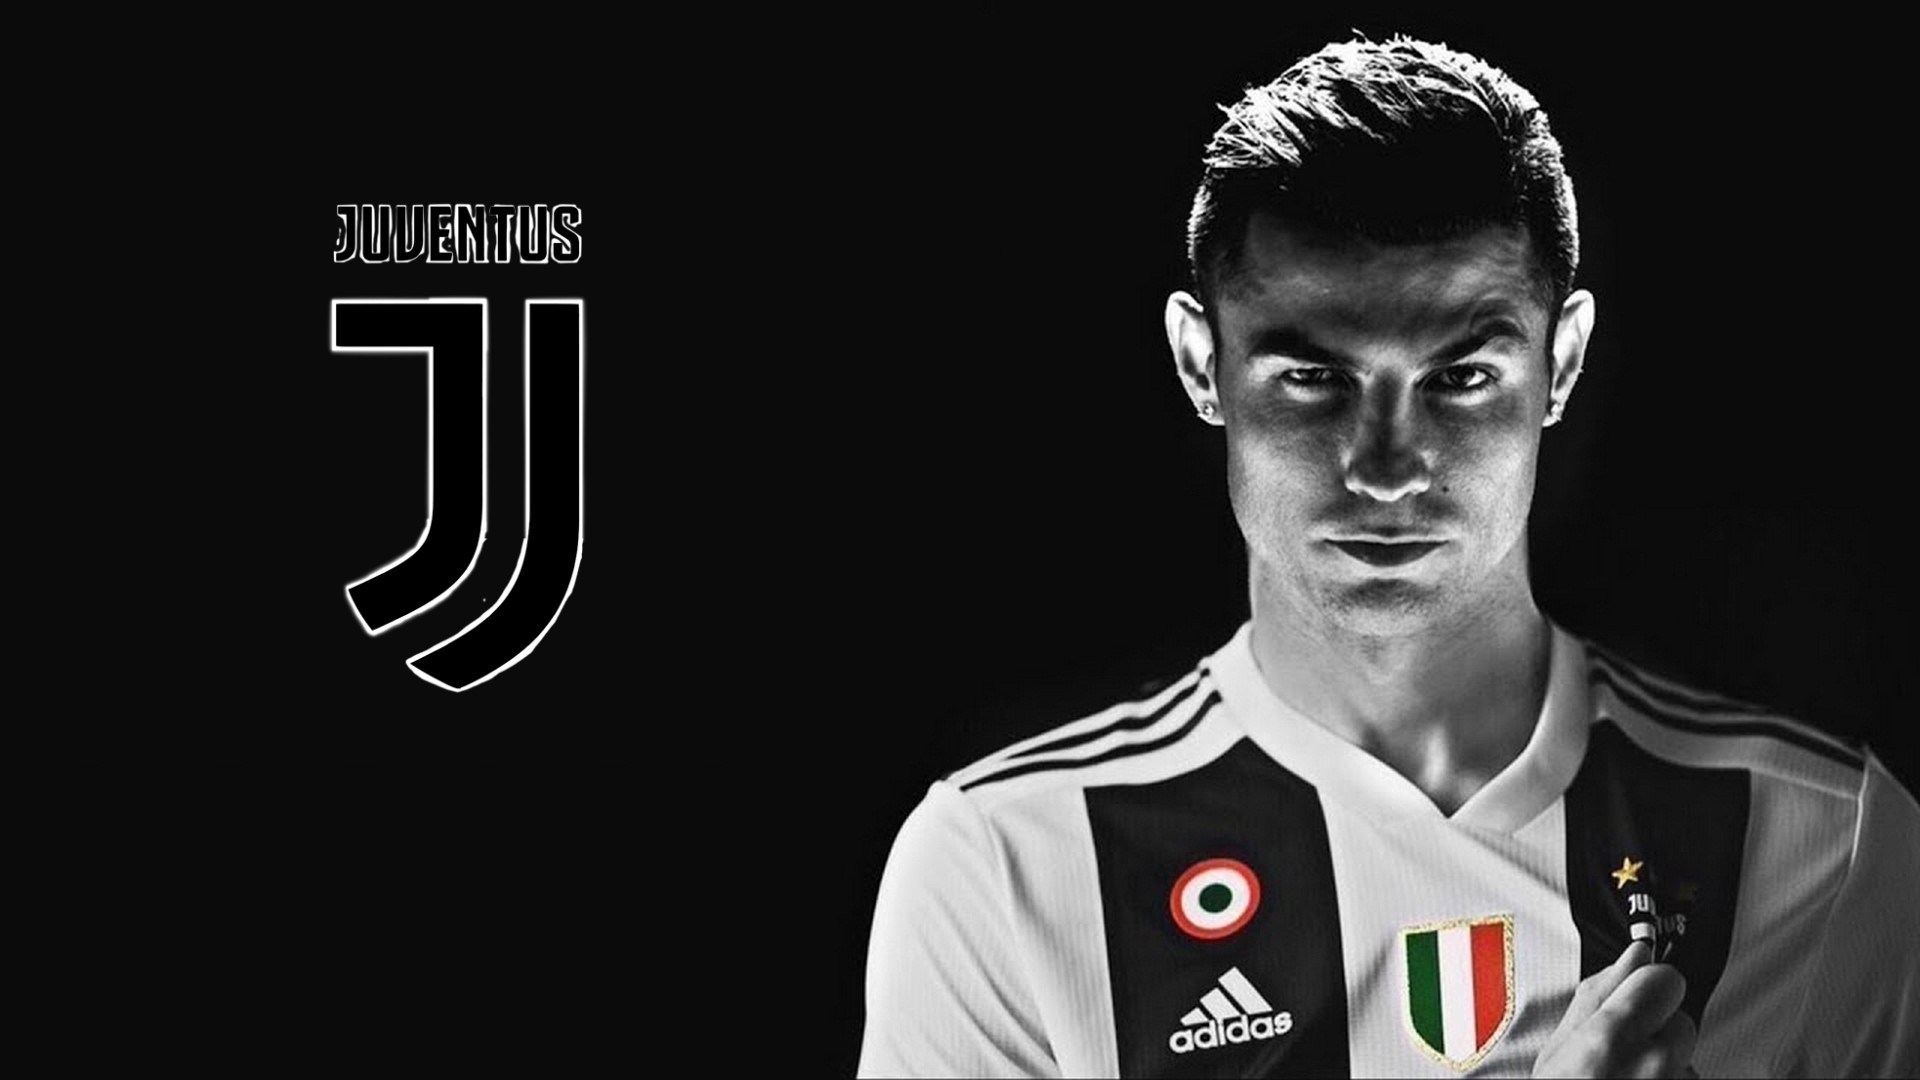 Download Juventus Wallpaper 2020